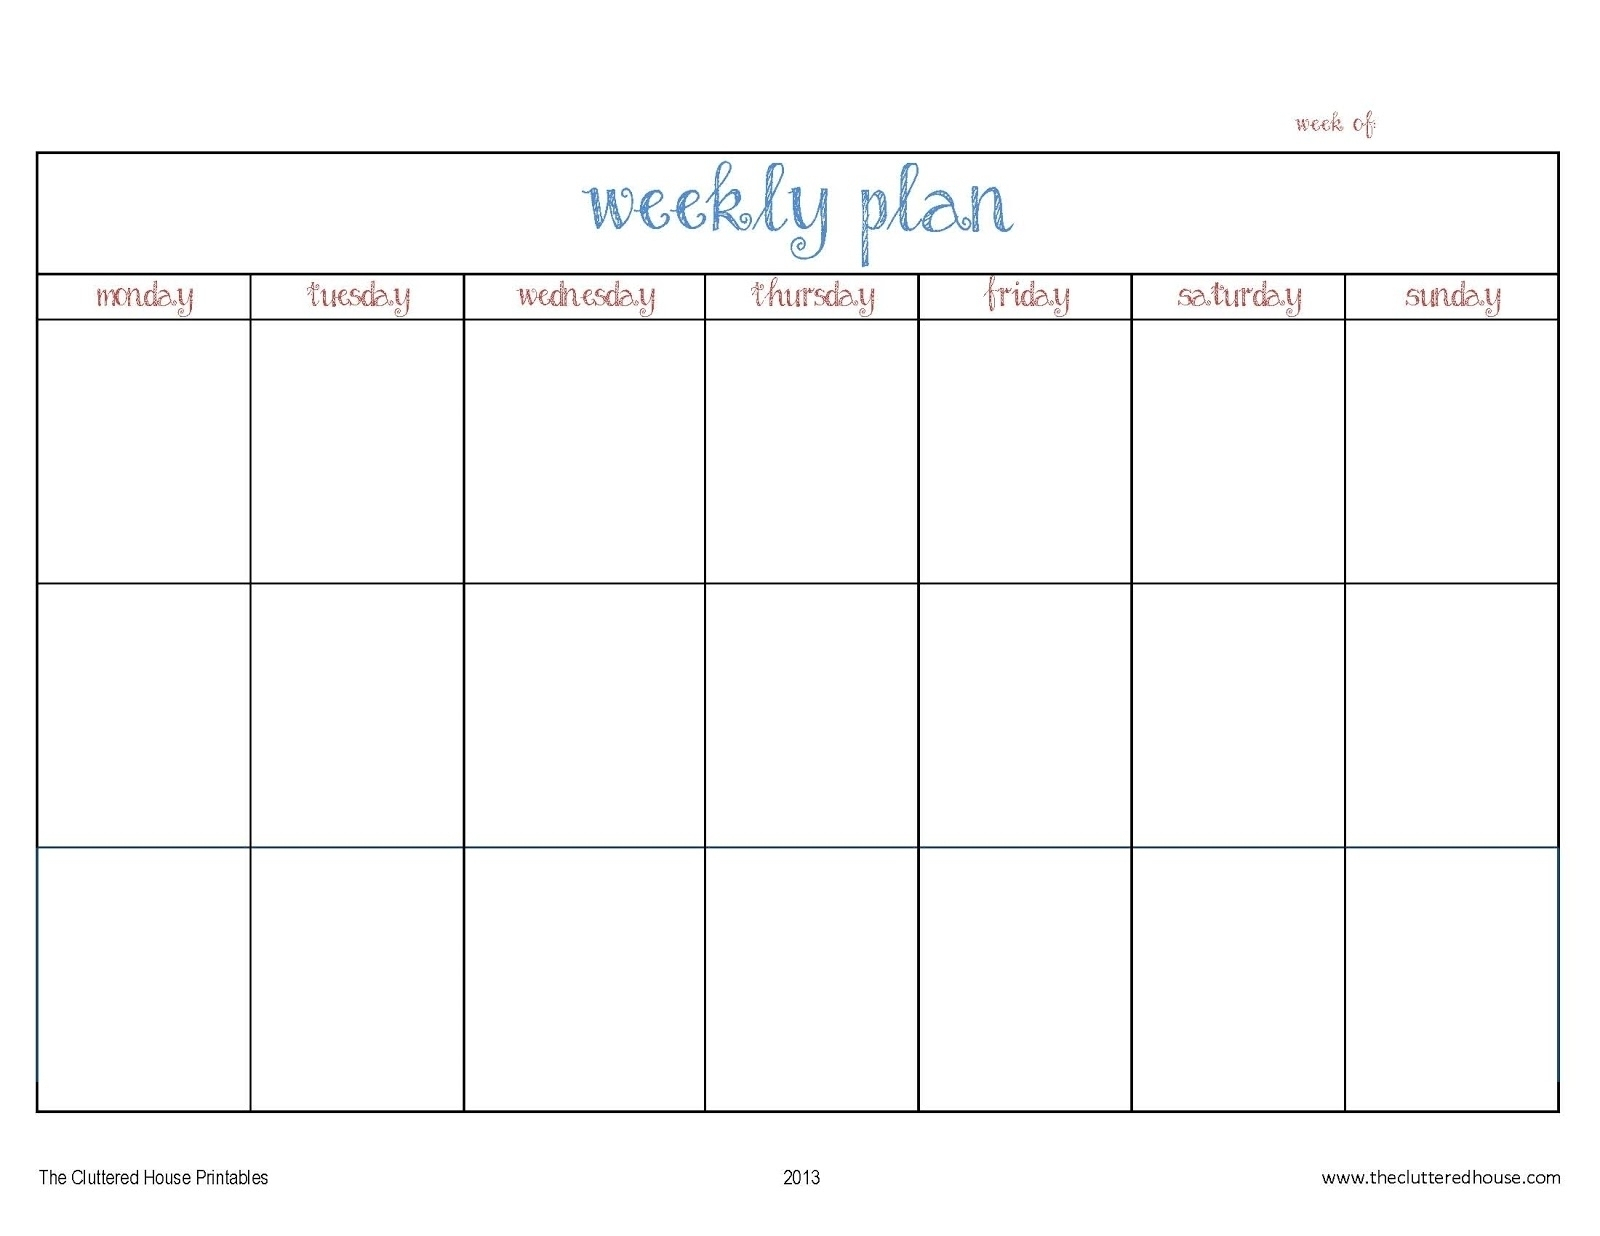 007 Week Calendar Tura Mansiondelrio Co Template Two Weeks